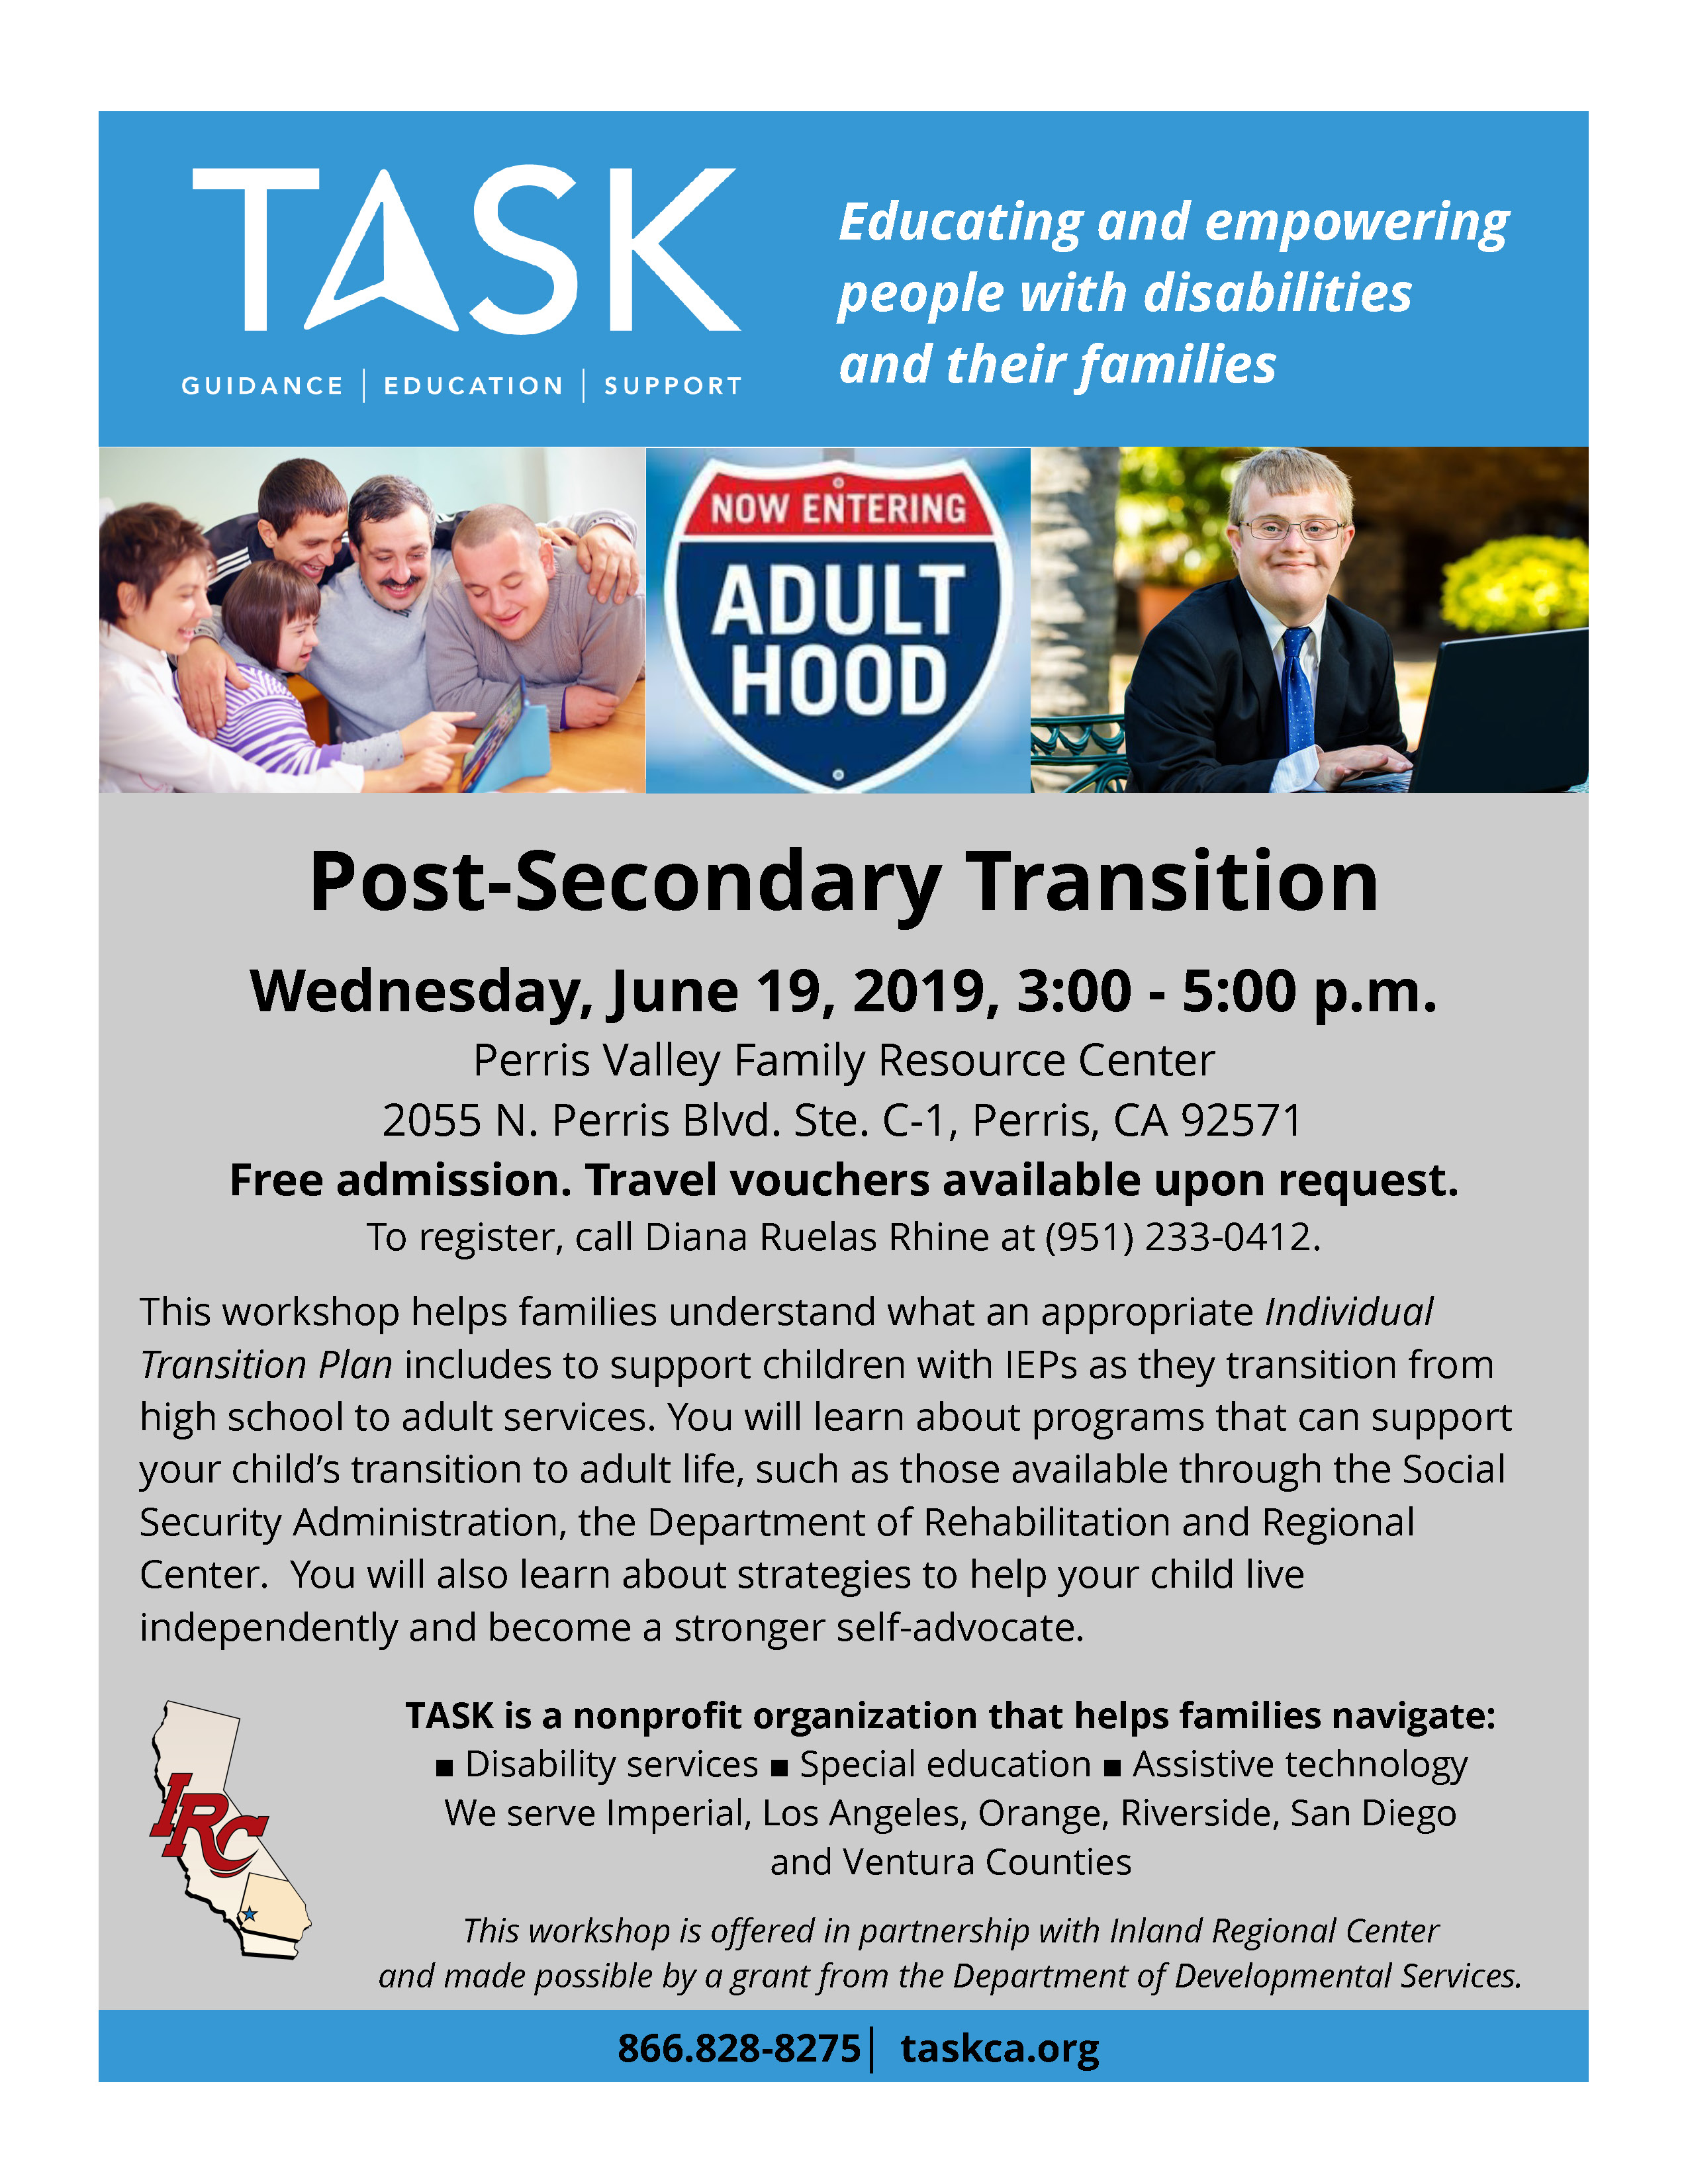 Post Secondary Transition Workshop